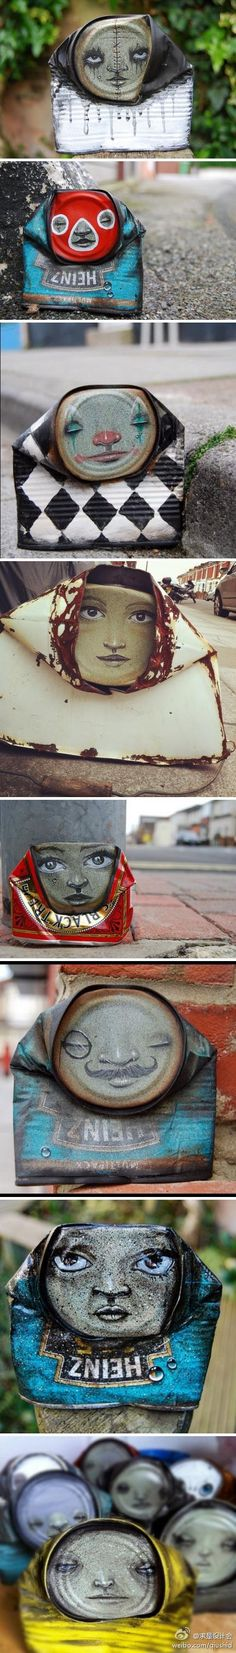 tin can faces